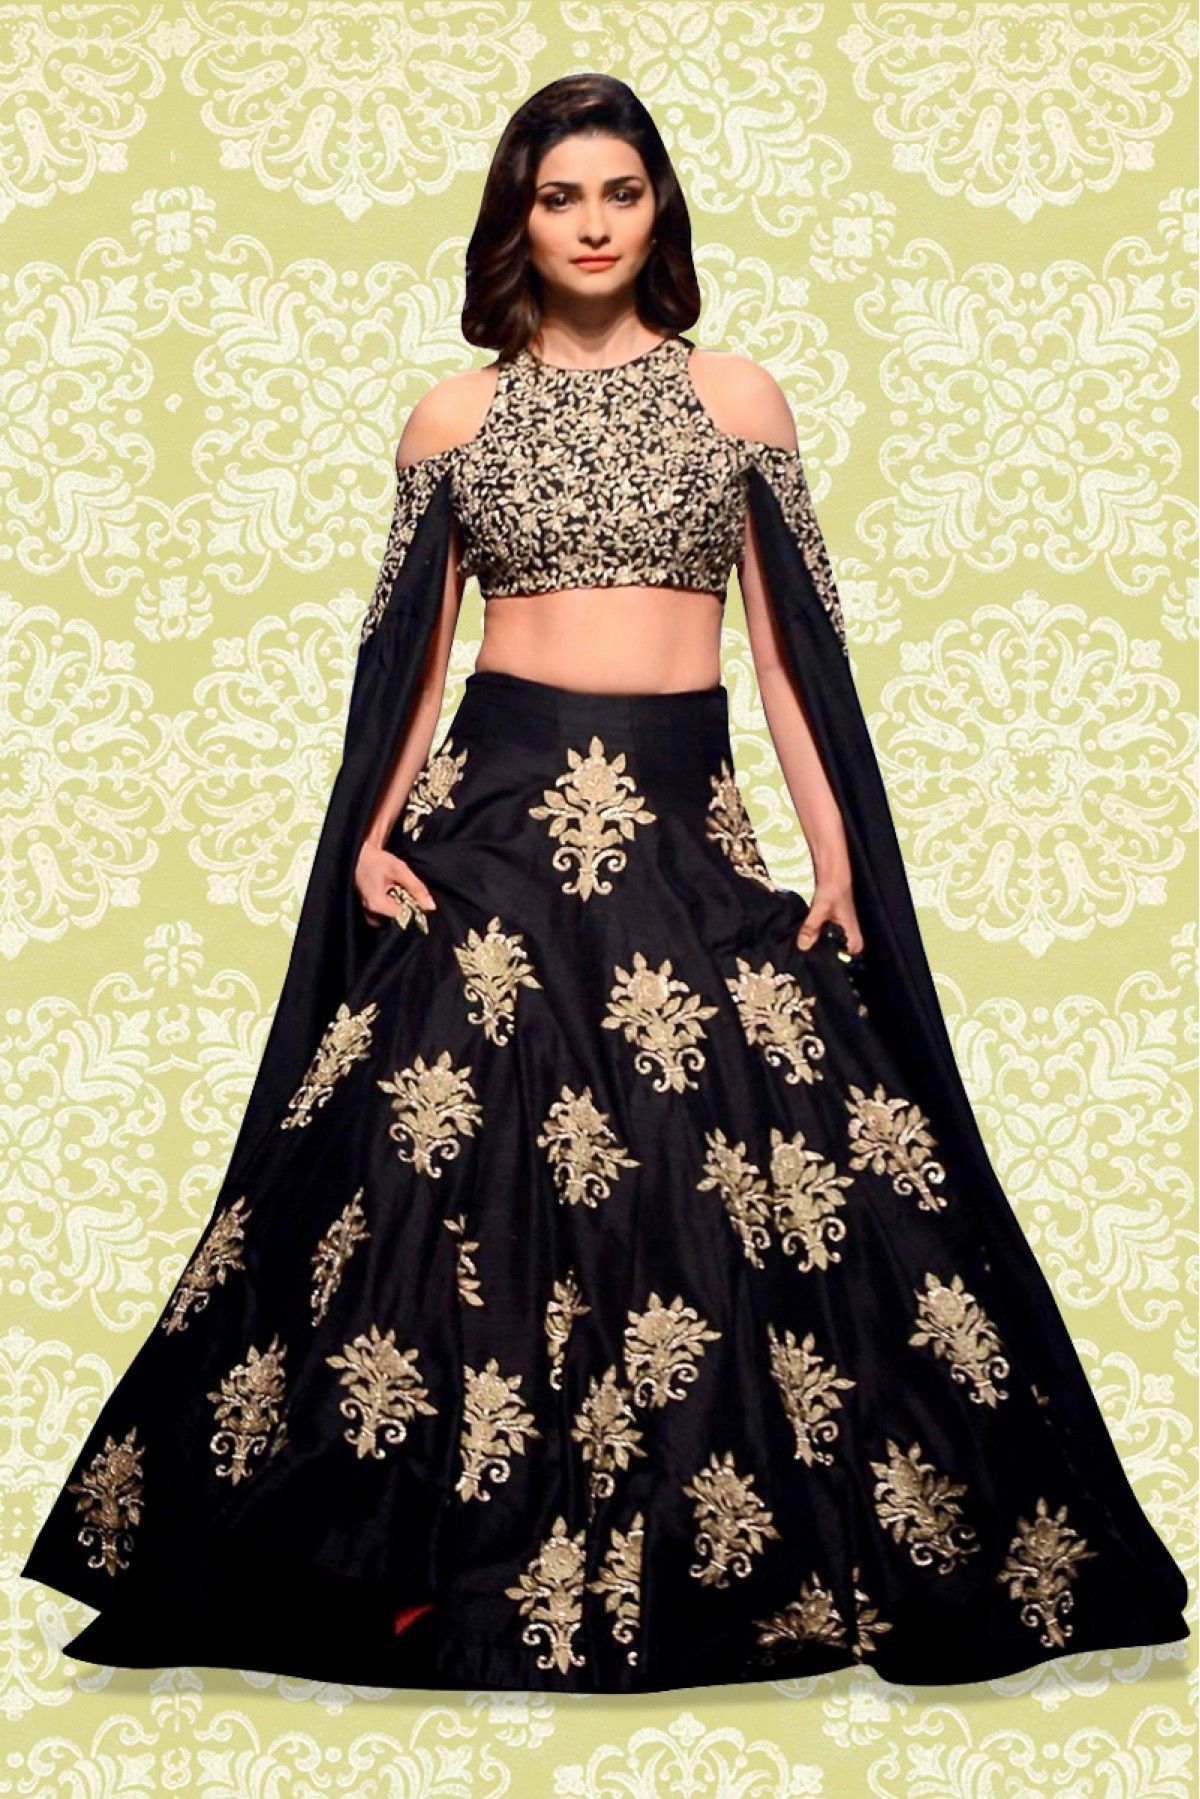 79f41b380e Black Colour Banglori Silk Fabric A Line Lehenga Choli Comes With Matching  Blouse and Dupatta. This Lehenga Choli Is Crafted With Embroidery,Patch Work .